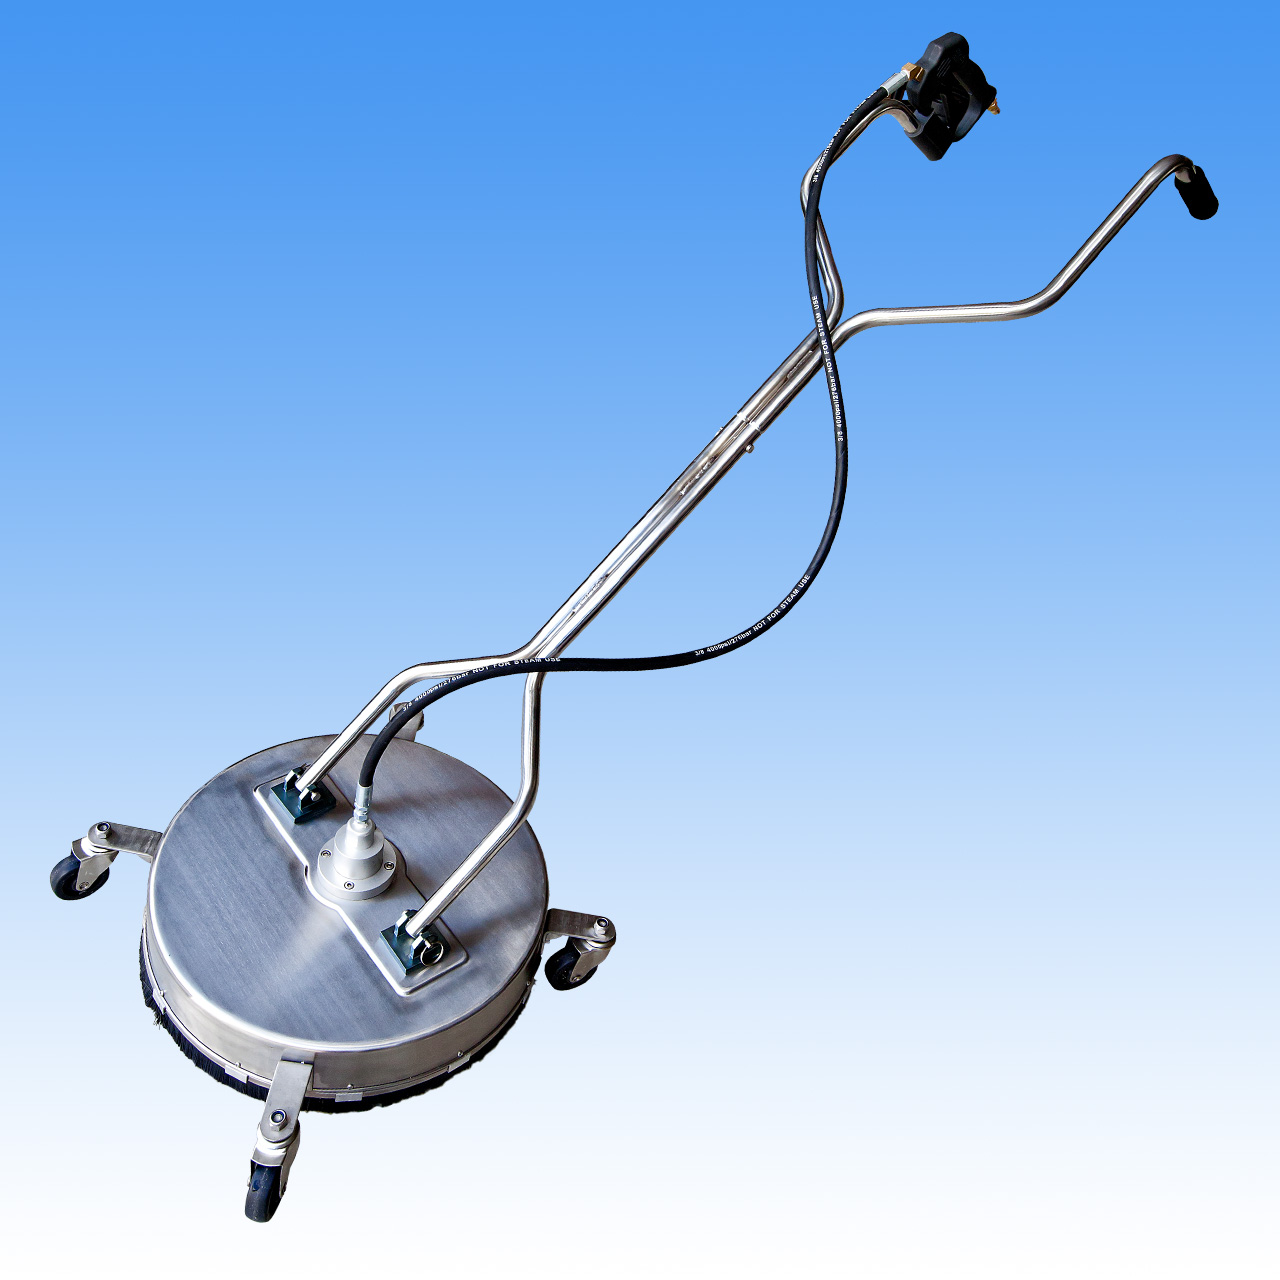 20 Inch Rotary Floor Surface Cleaner Stainless Steel 3